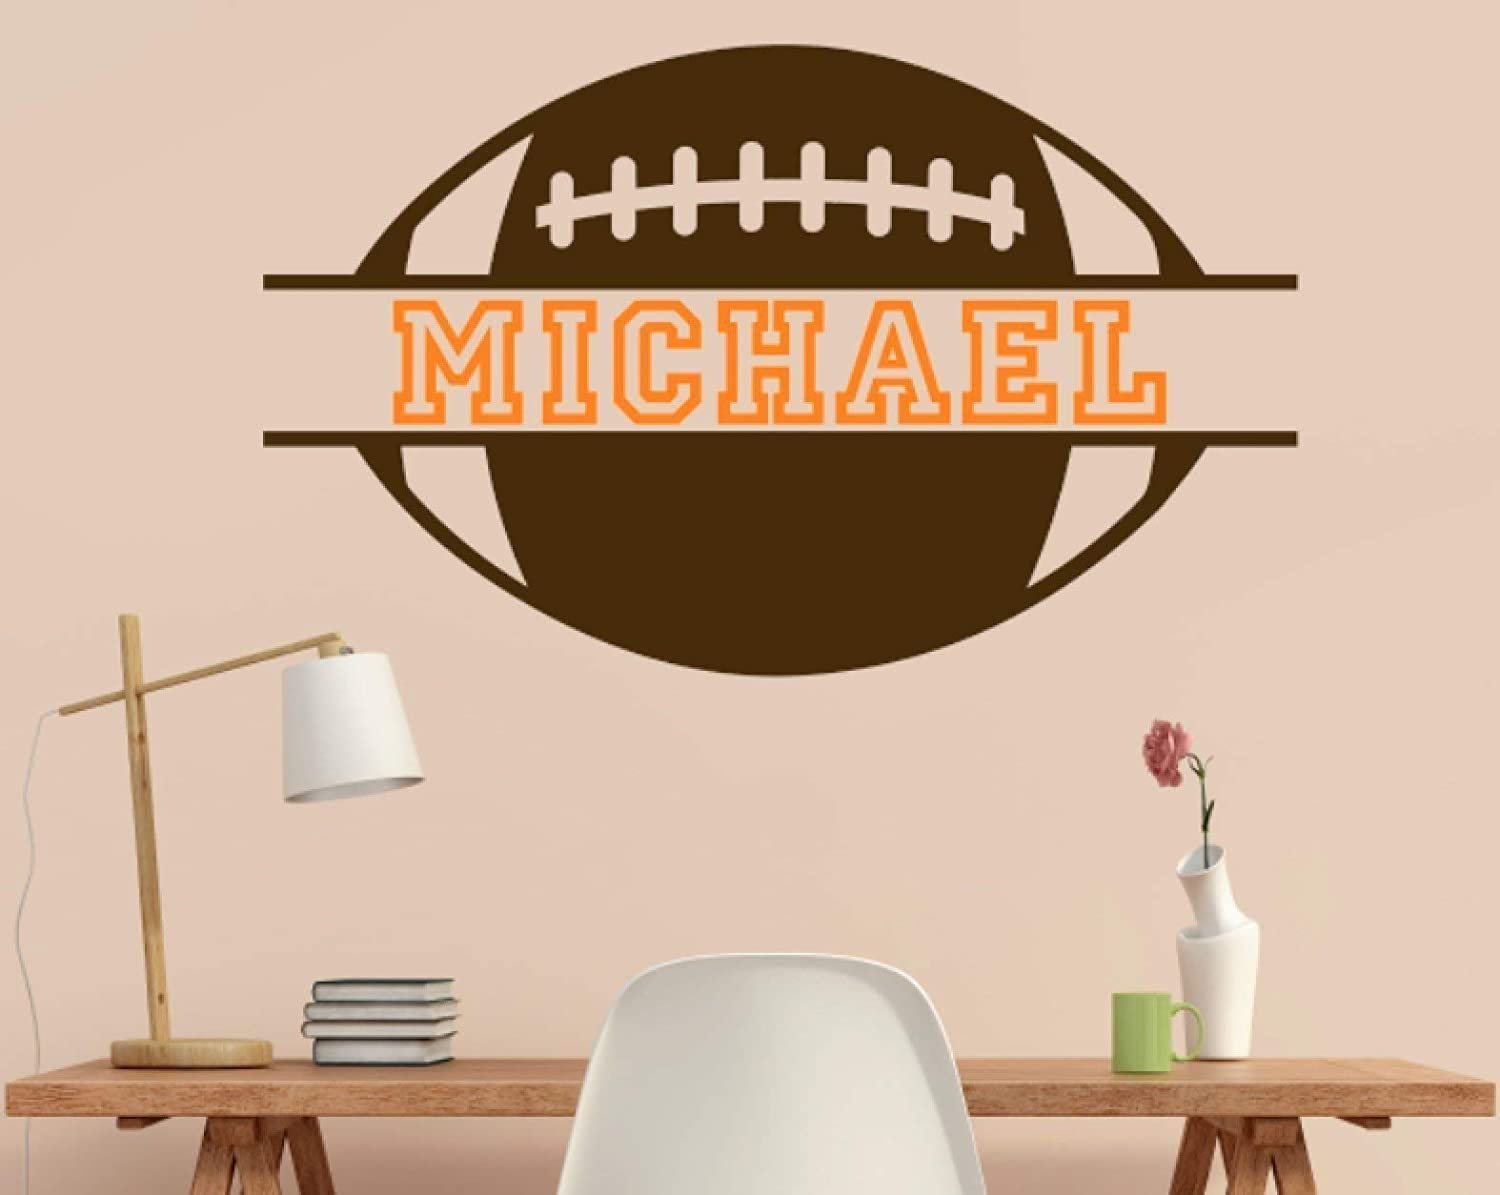 B01FROJGOY Custom Name Added to Football Vinyl Wall Decal Football Theme Personalized Removable Sticker Perfect for Above Bed Sports Room 612B8M4DbrWL